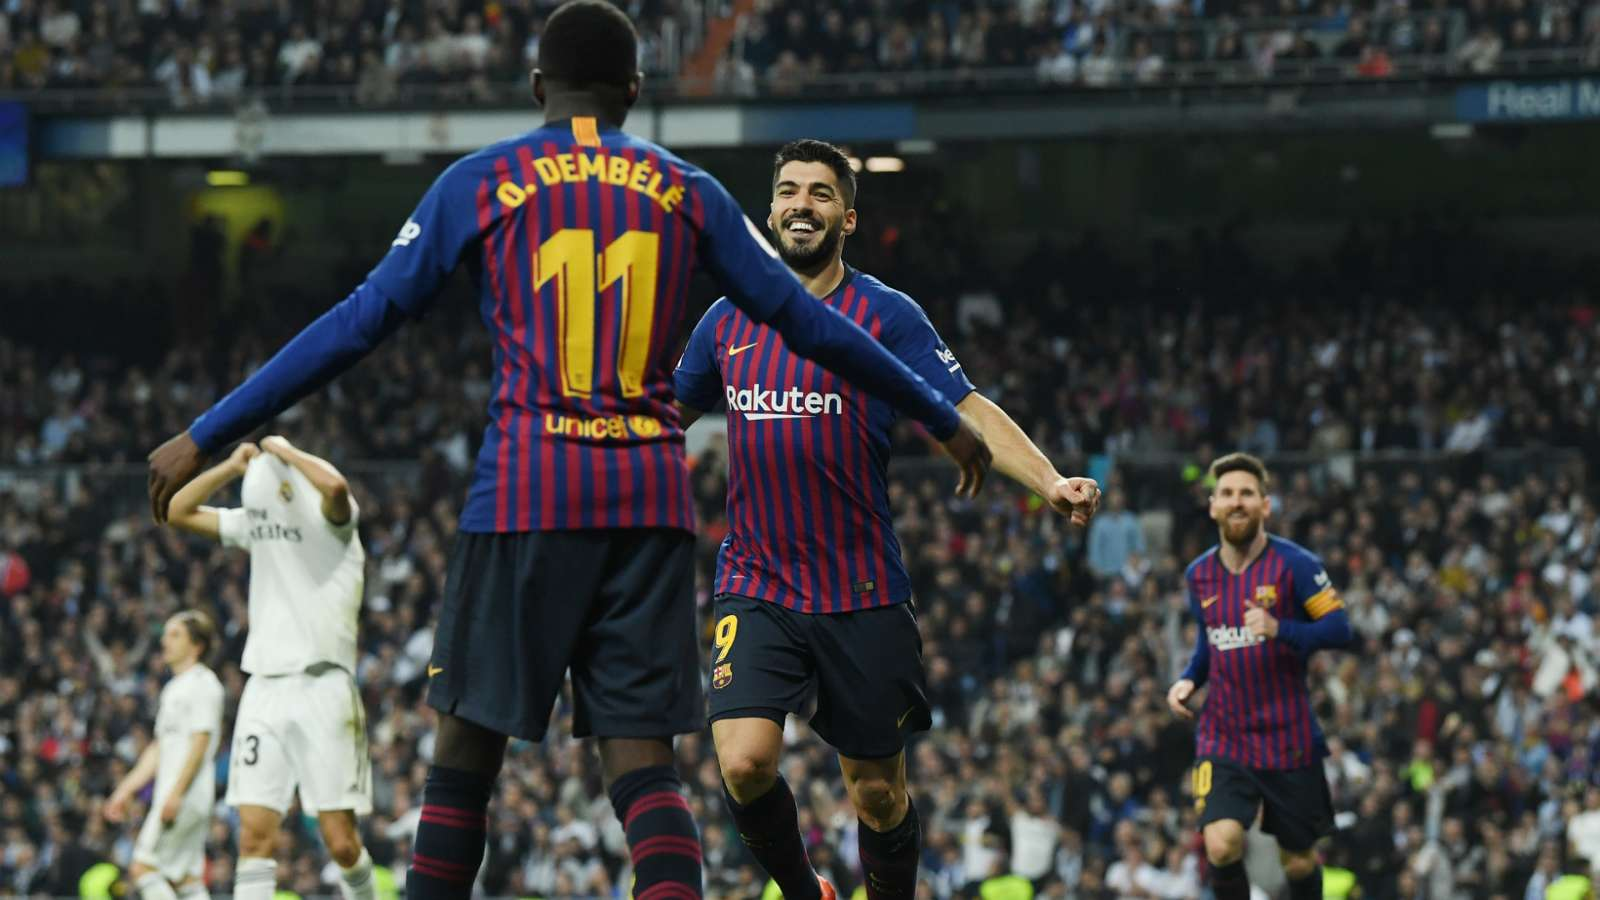 luis suarez  - Real Madrid vs Barcelona 0-3 (1-4 agg): Copa Del Rey Match Report & Highlights